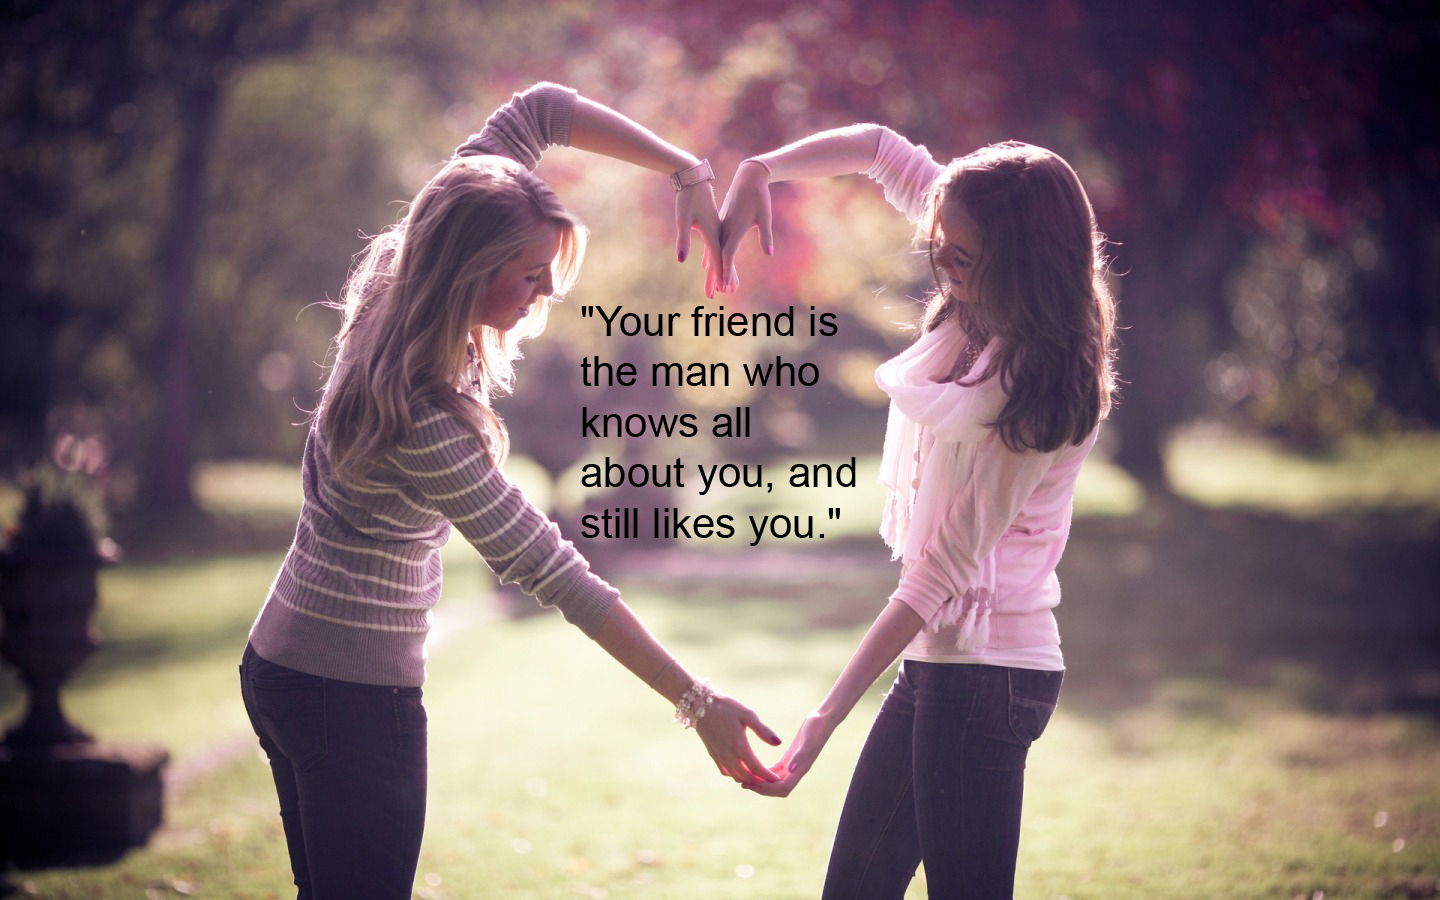 """Your Friend Is the Man Who Knows All About You ,and Still Likes You ~ Friendship Quote"